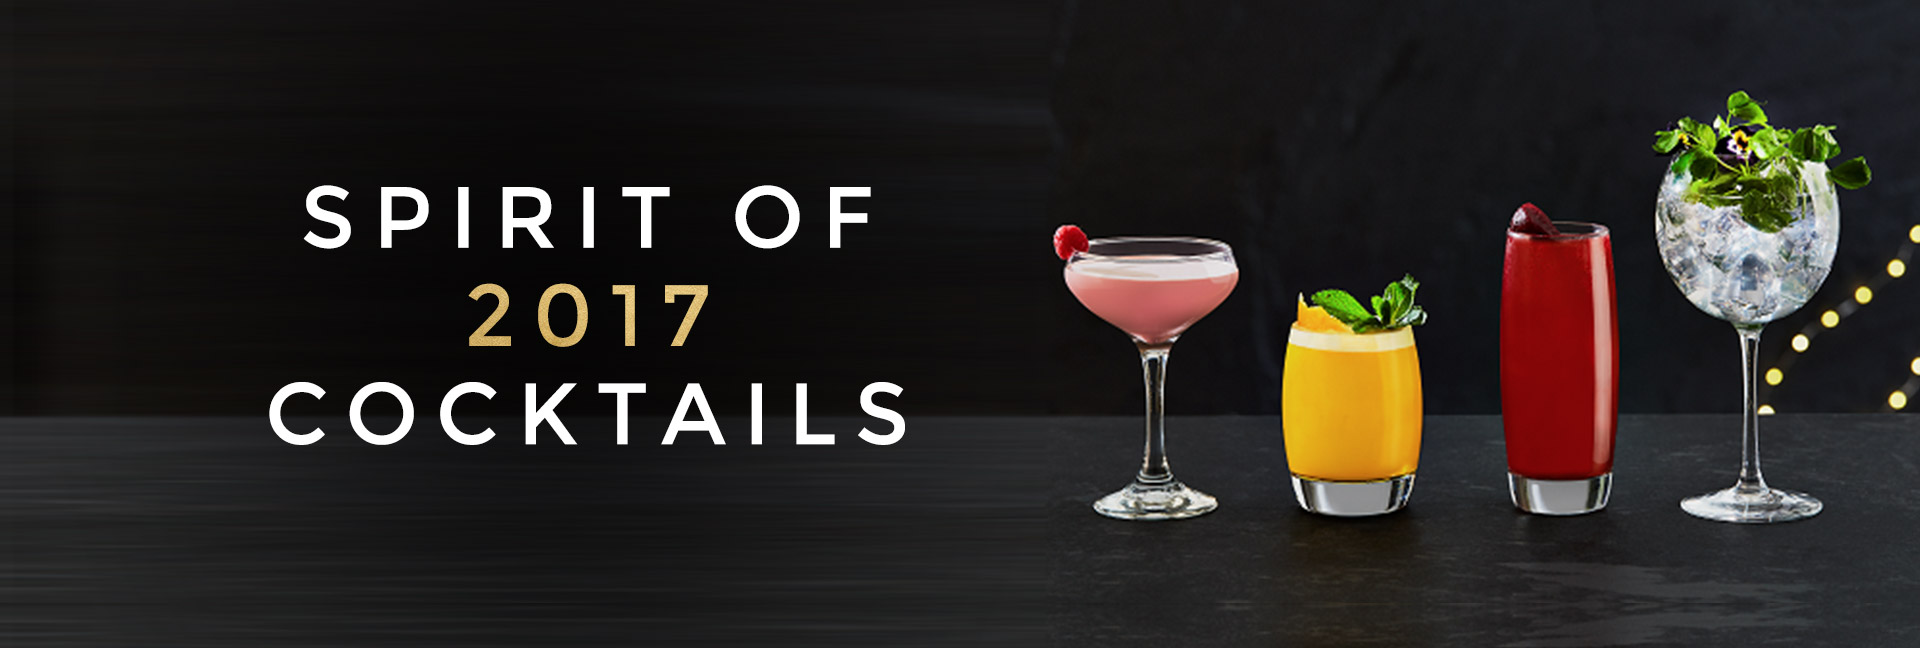 Spirit of 2017 cocktails at All Bar One Oxford